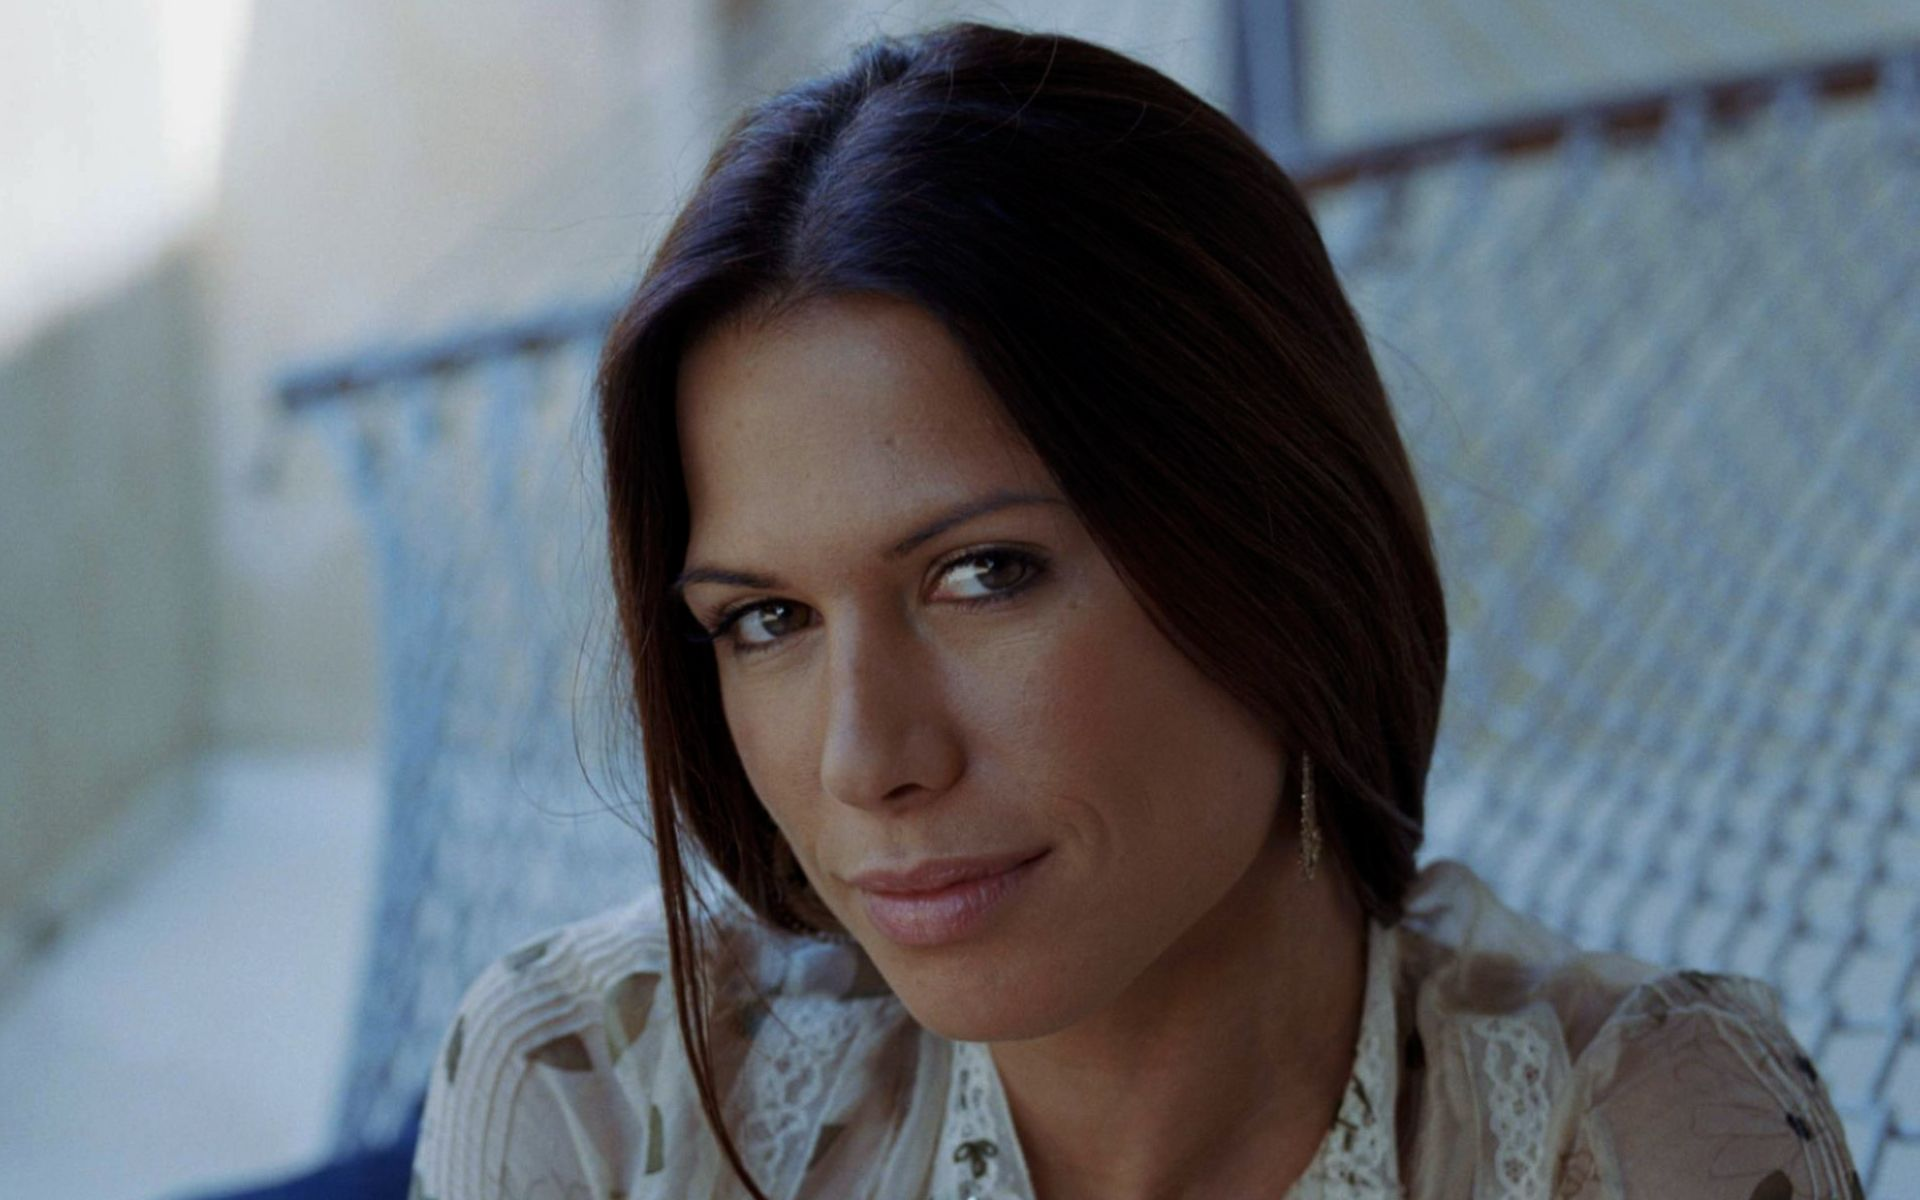 rhona mitra lara croftrhona mitra inst, rhona mitra site, rhona mitra фото, rhona mitra vk, rhona mitra lara croft, rhona mitra кинопоиск, rhona mitra -, rhona mitra who's dated, rhona mitra figure, rhona mitra news, rhona mitra википедия, rhona mitra gossip, rhona mitra фильмы, rhona mitra net worth